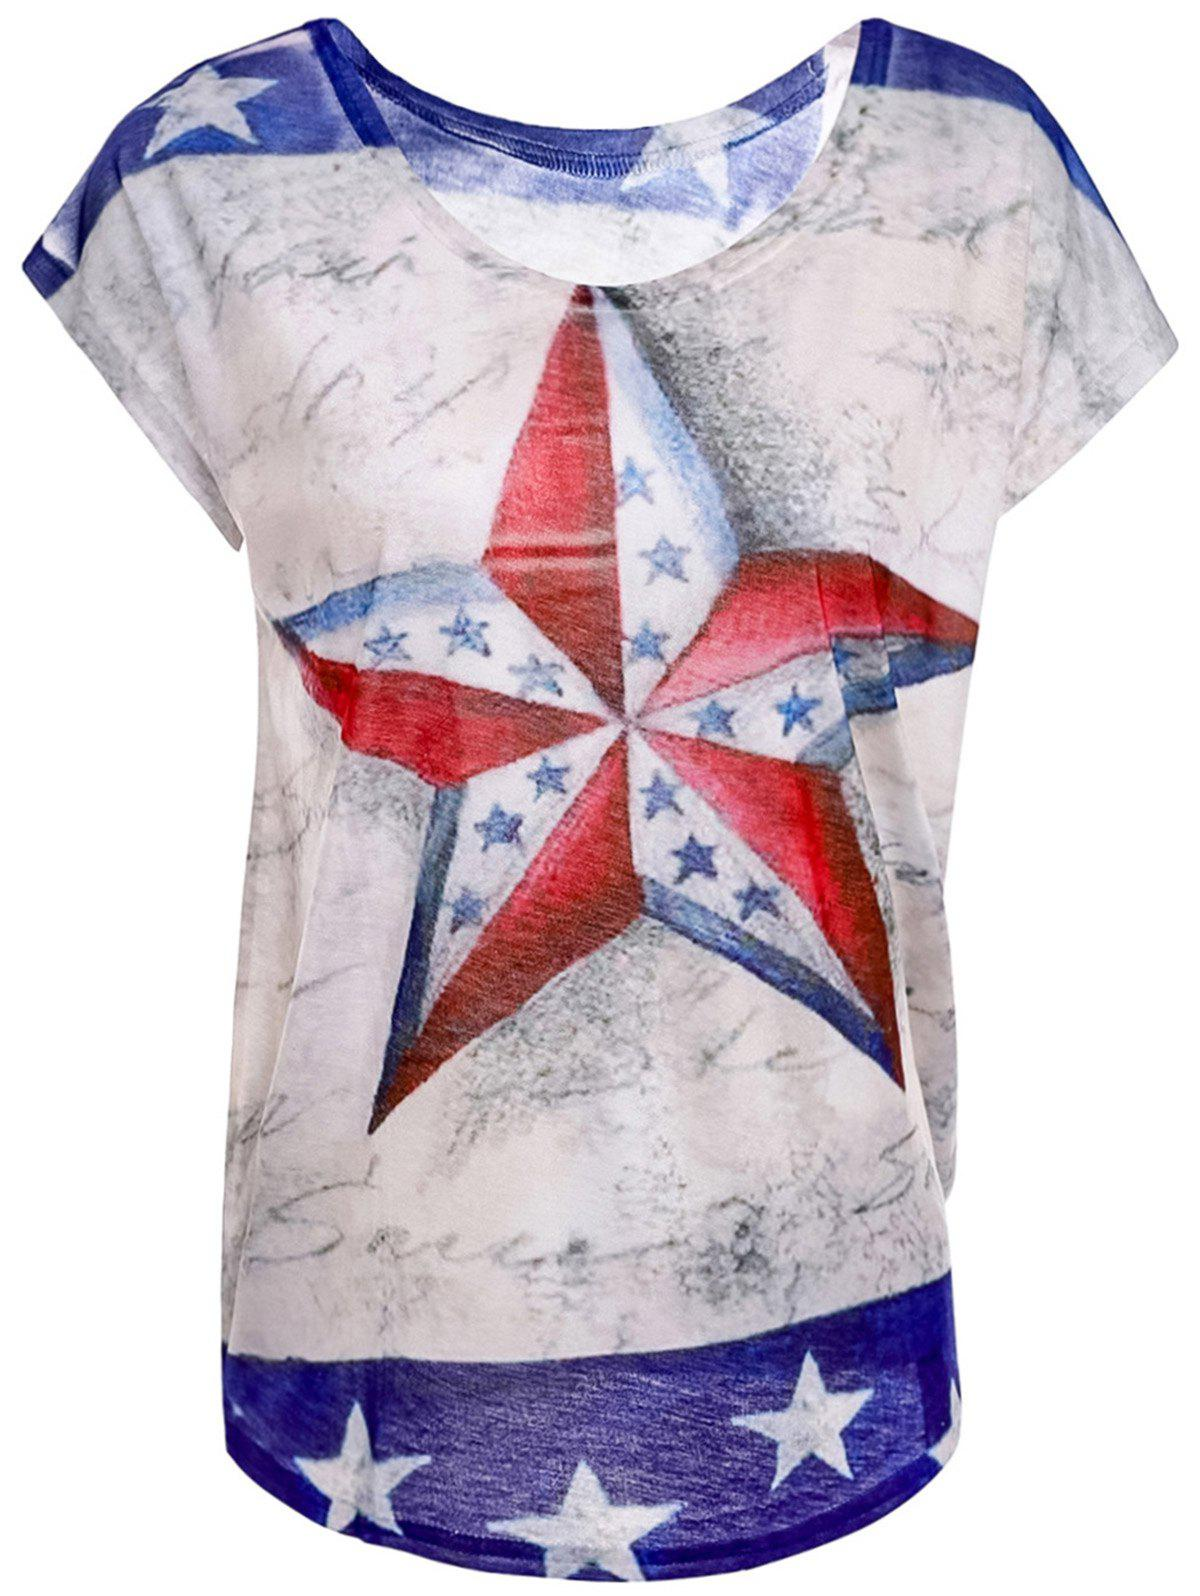 Casual Women's Scoop Neck Star Print Short Sleeve T-Shirt - WHITE ONE SIZE(FIT SIZE XS TO M)